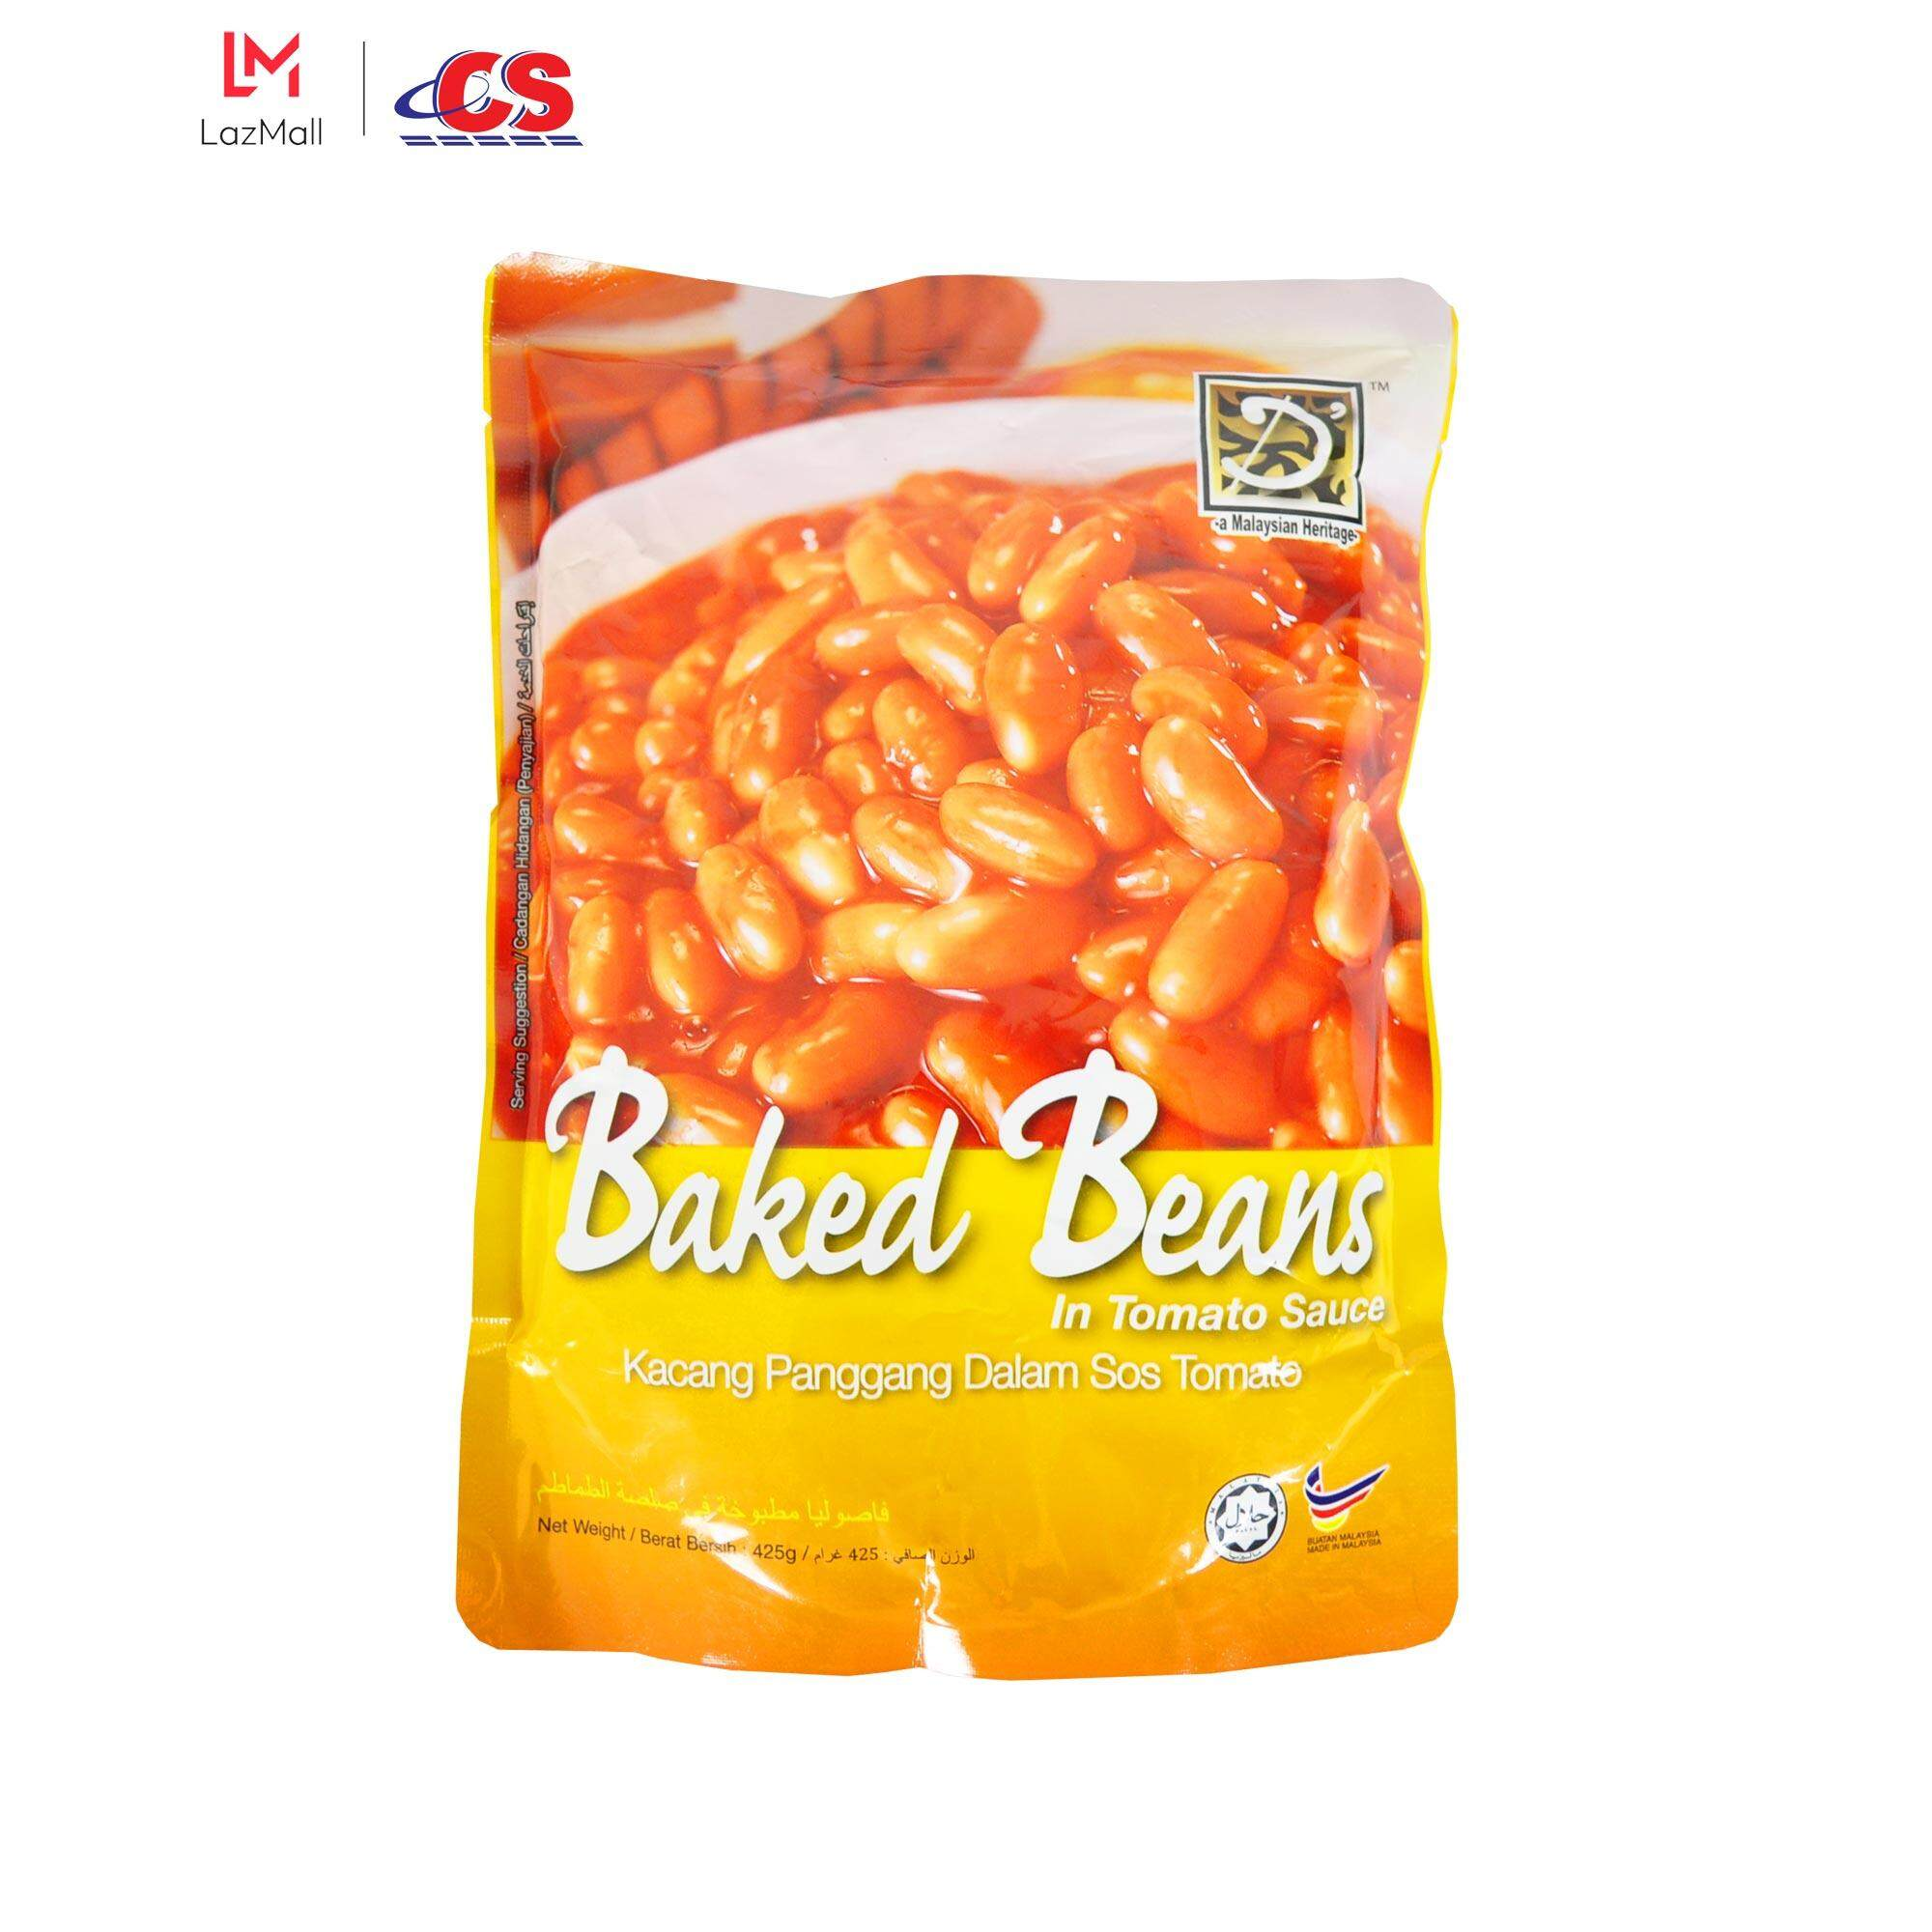 D' HERITAGE Baked Beans in Tomato Sauce 425g